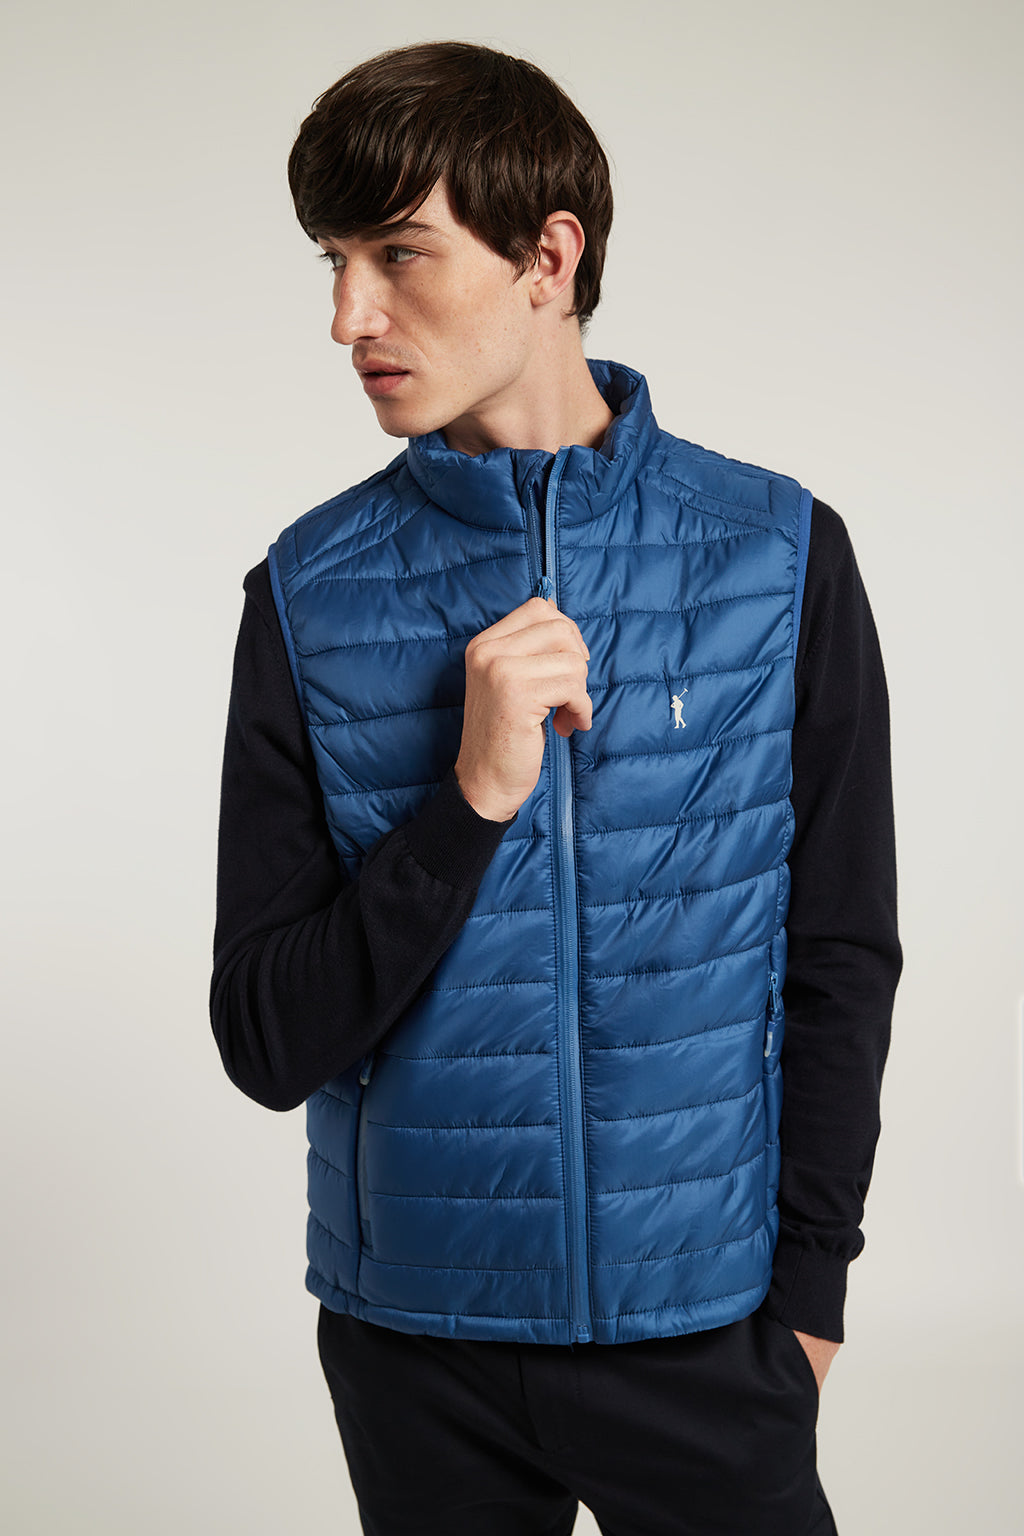 Royal blue quilted vest with heat-sealed zip closure